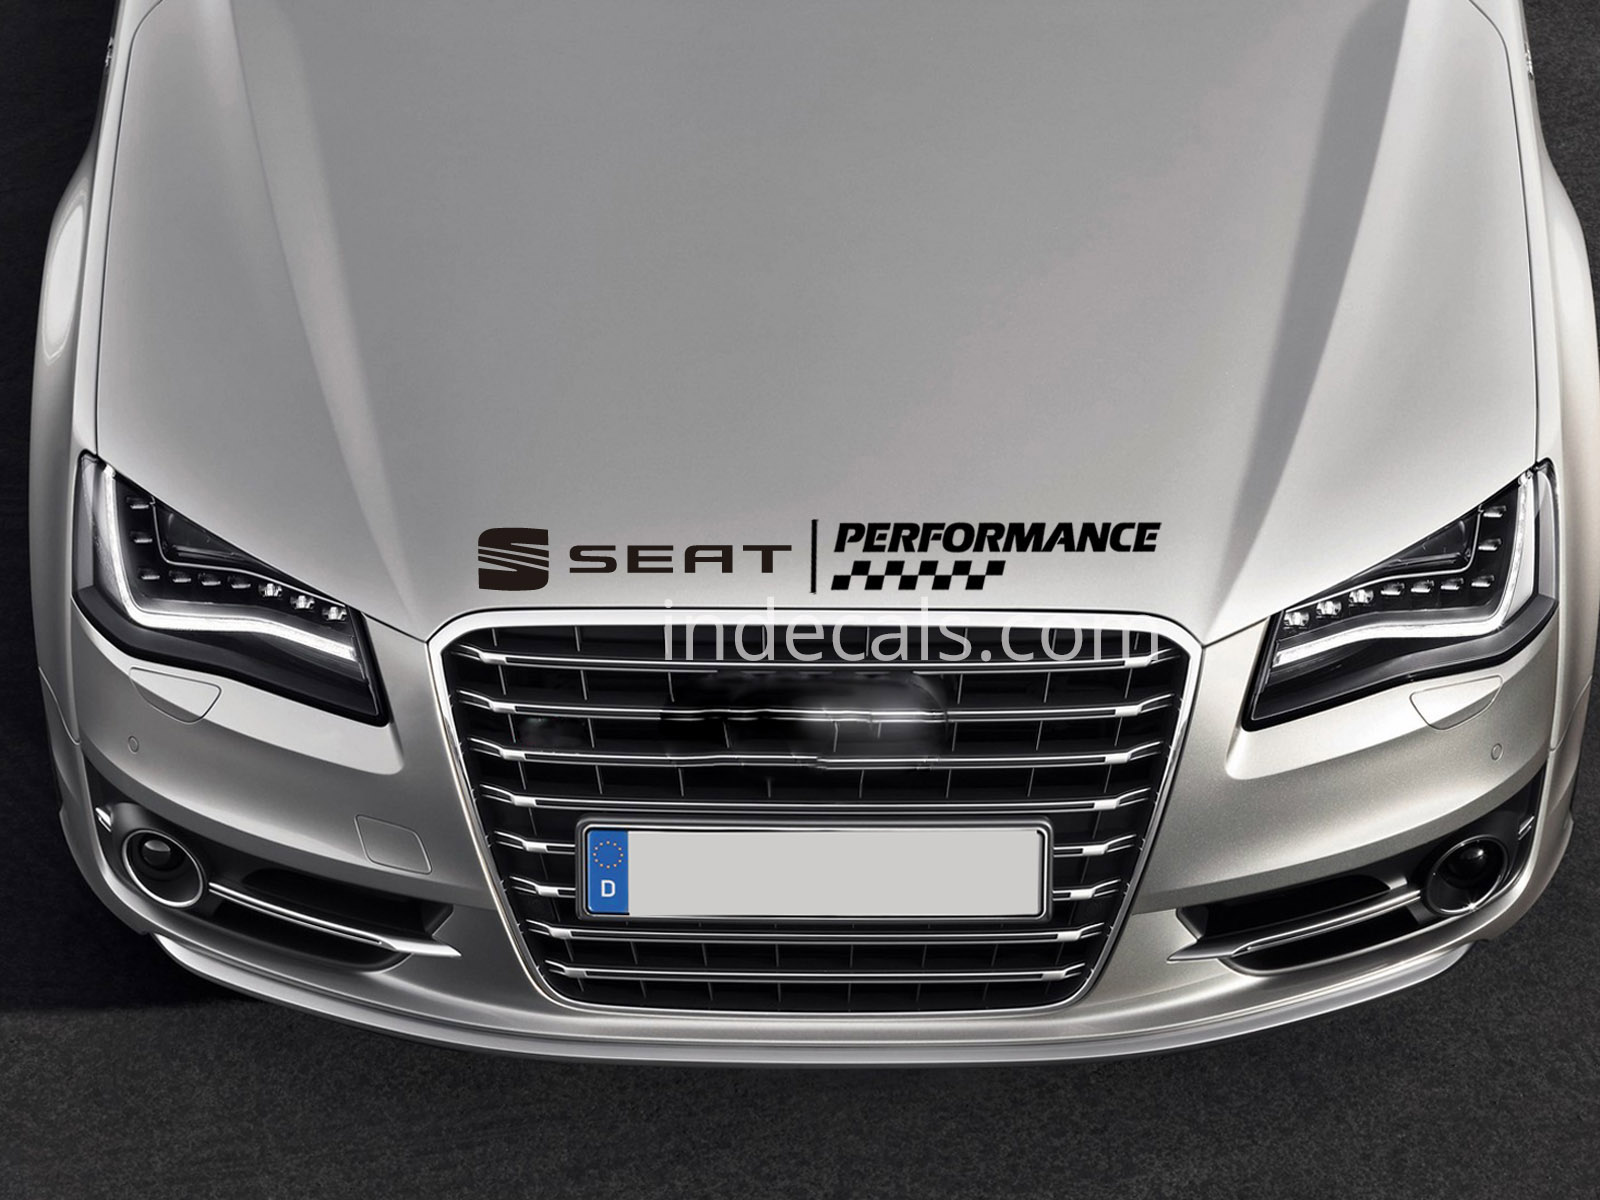 1 x Seat Performance Sticker for Bonnet - Black